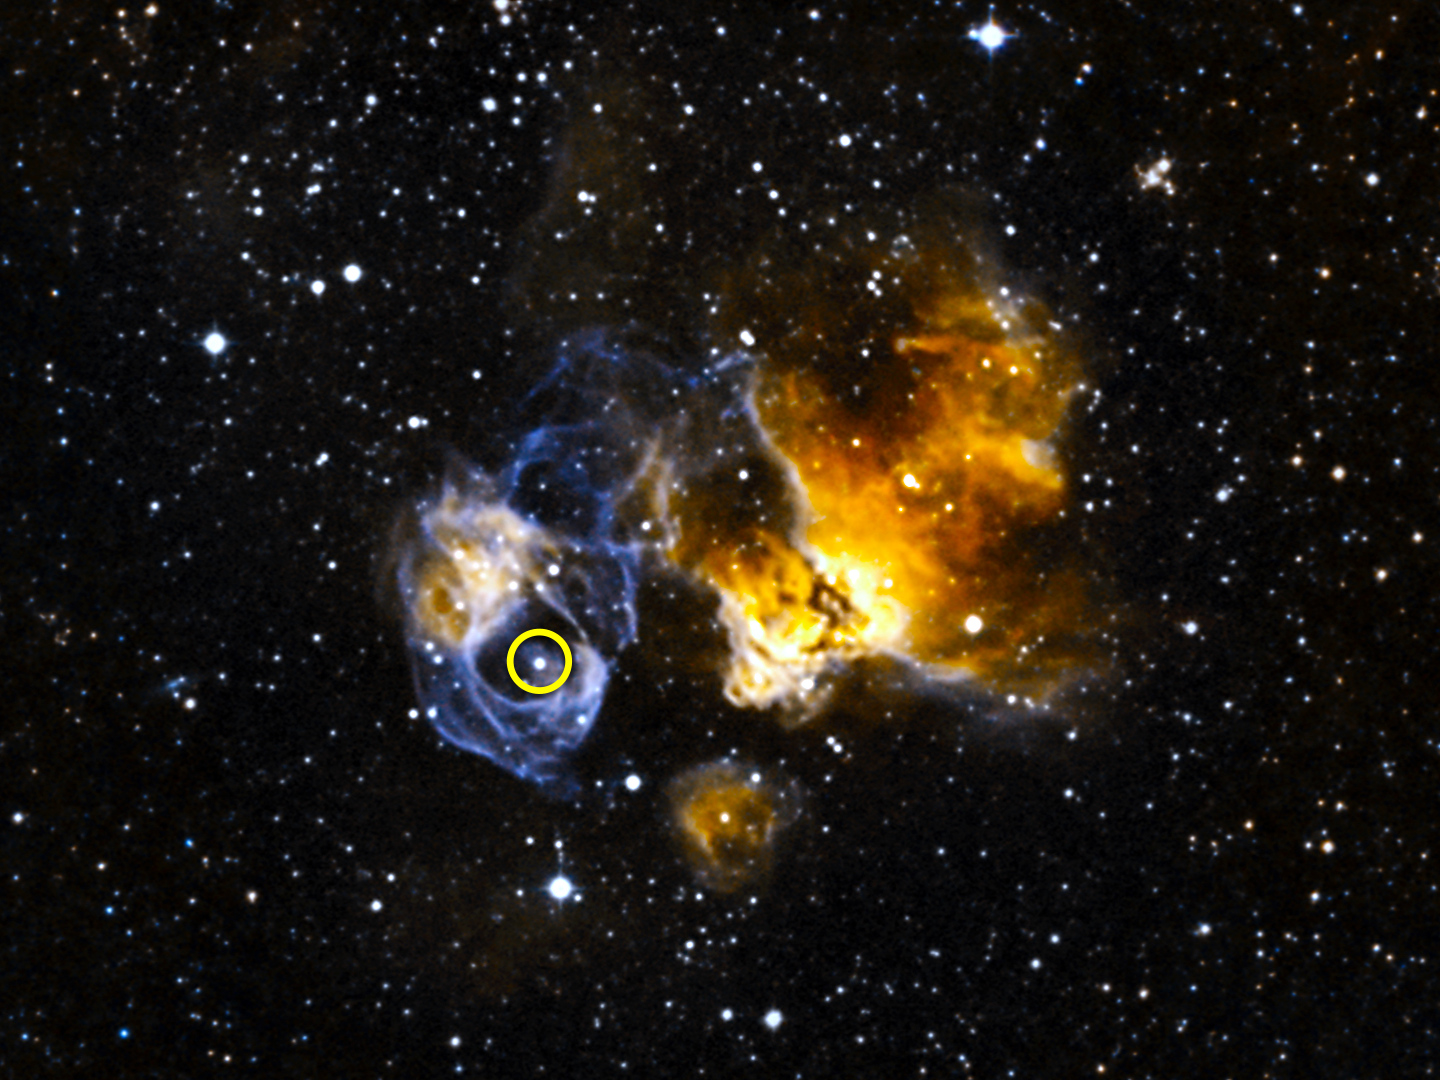 LMCP3 (circled) is located in a supernova remnant called DEML241 in the Large Magellanic Cloud (LMC), a small galaxy about 163,000 light-years away. The system is the first gamma-ray binary discovered in another galaxy and is the most luminous known in gamma rays, X-rays, radio waves and visible light. Image credit: NASA's Goddard Space Flight Center.